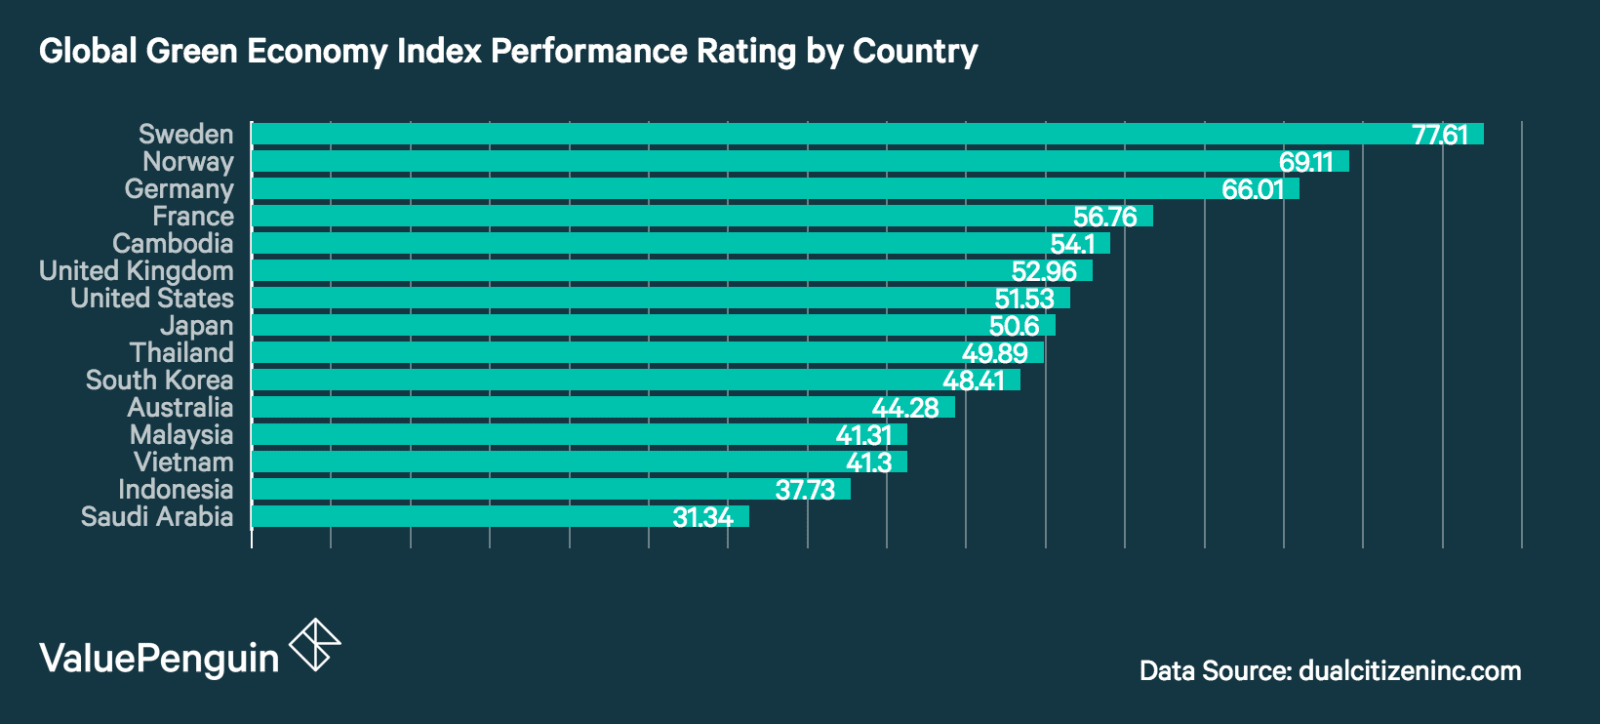 This graph shows the Global Green Economy Index performance score of a variety of countries with the highest being Sweden and the lowest being Saudi Arabia